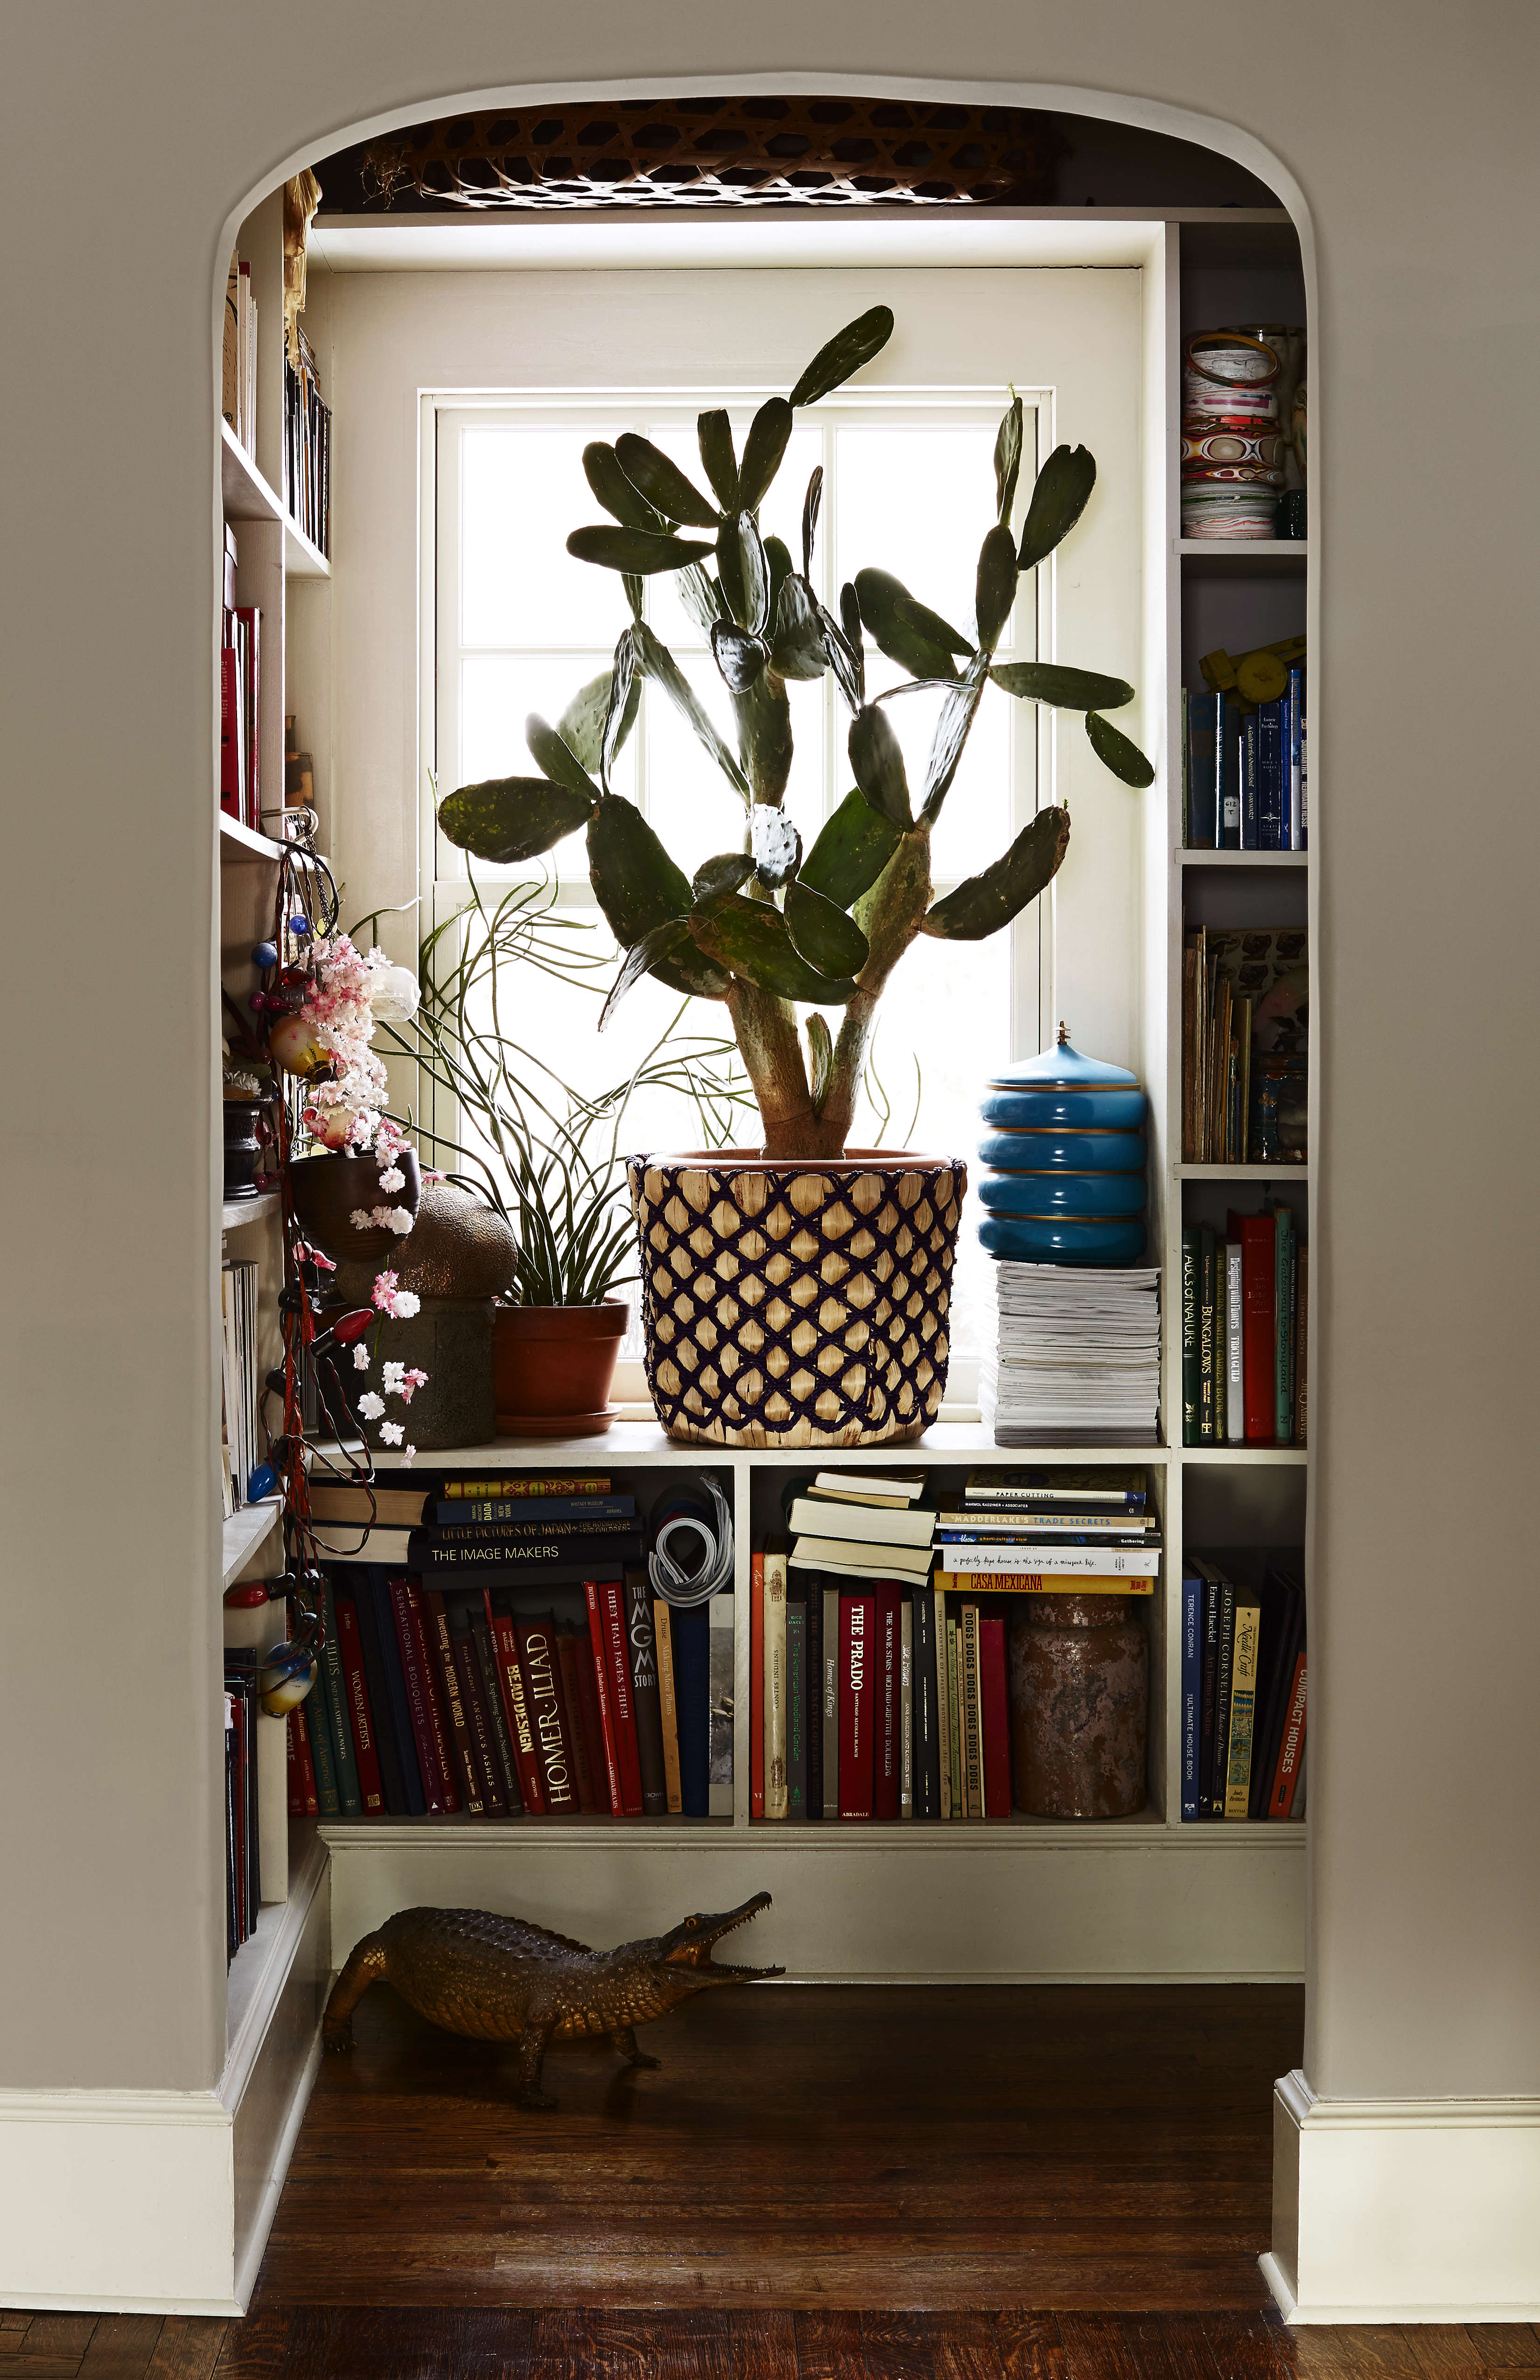 A prickly pear cactus (in a woven palm planter from Target) fills the window of the niche library, formerly the downstairs bathroom. The windows throughout are all new, save for the ones in the sunroom, and are by Pella.